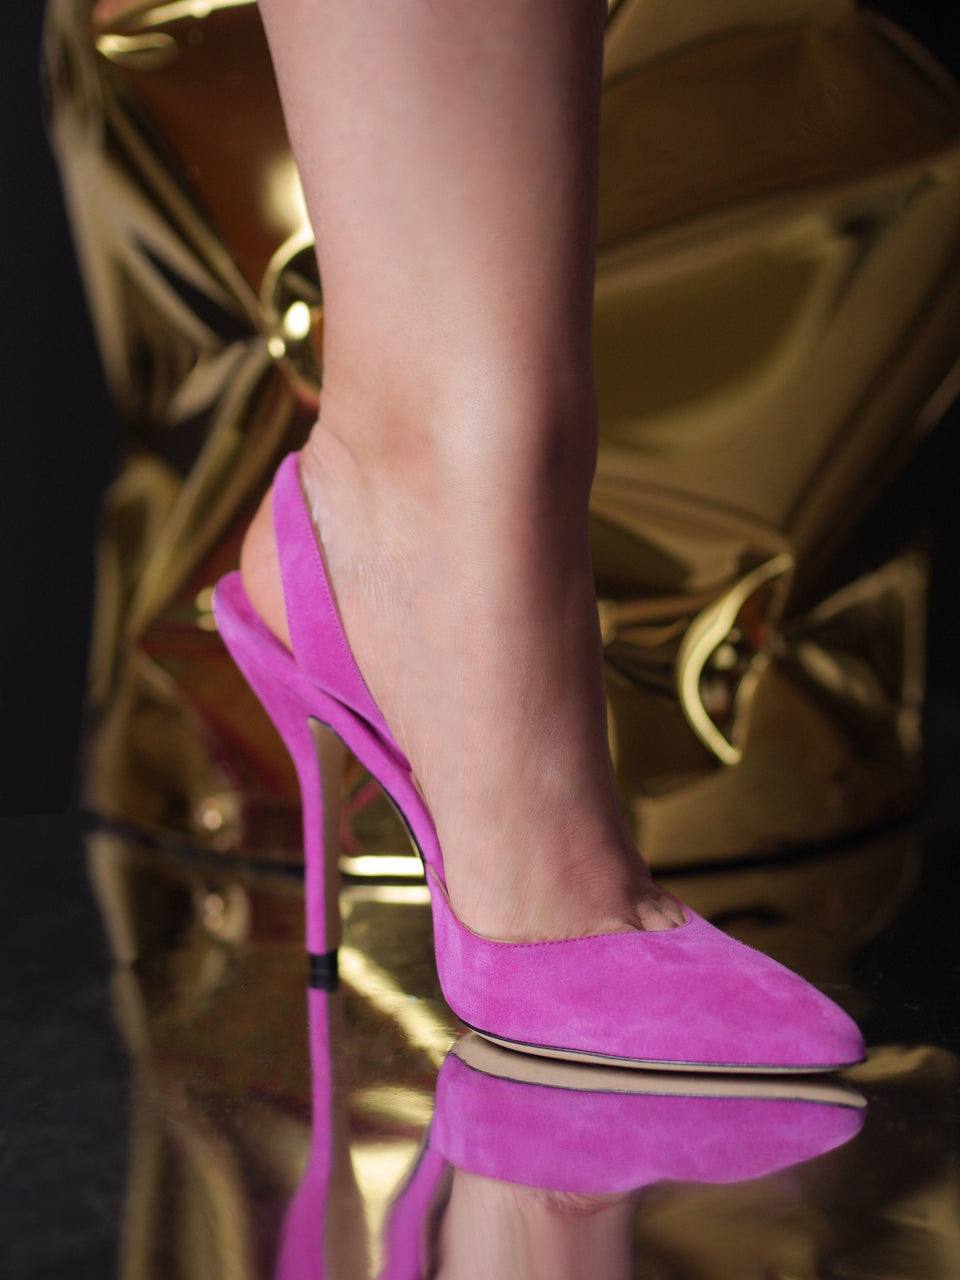 Passion: Suede Slingback Fuchsia Shoes Paul Andrew - der ZEITGEIST